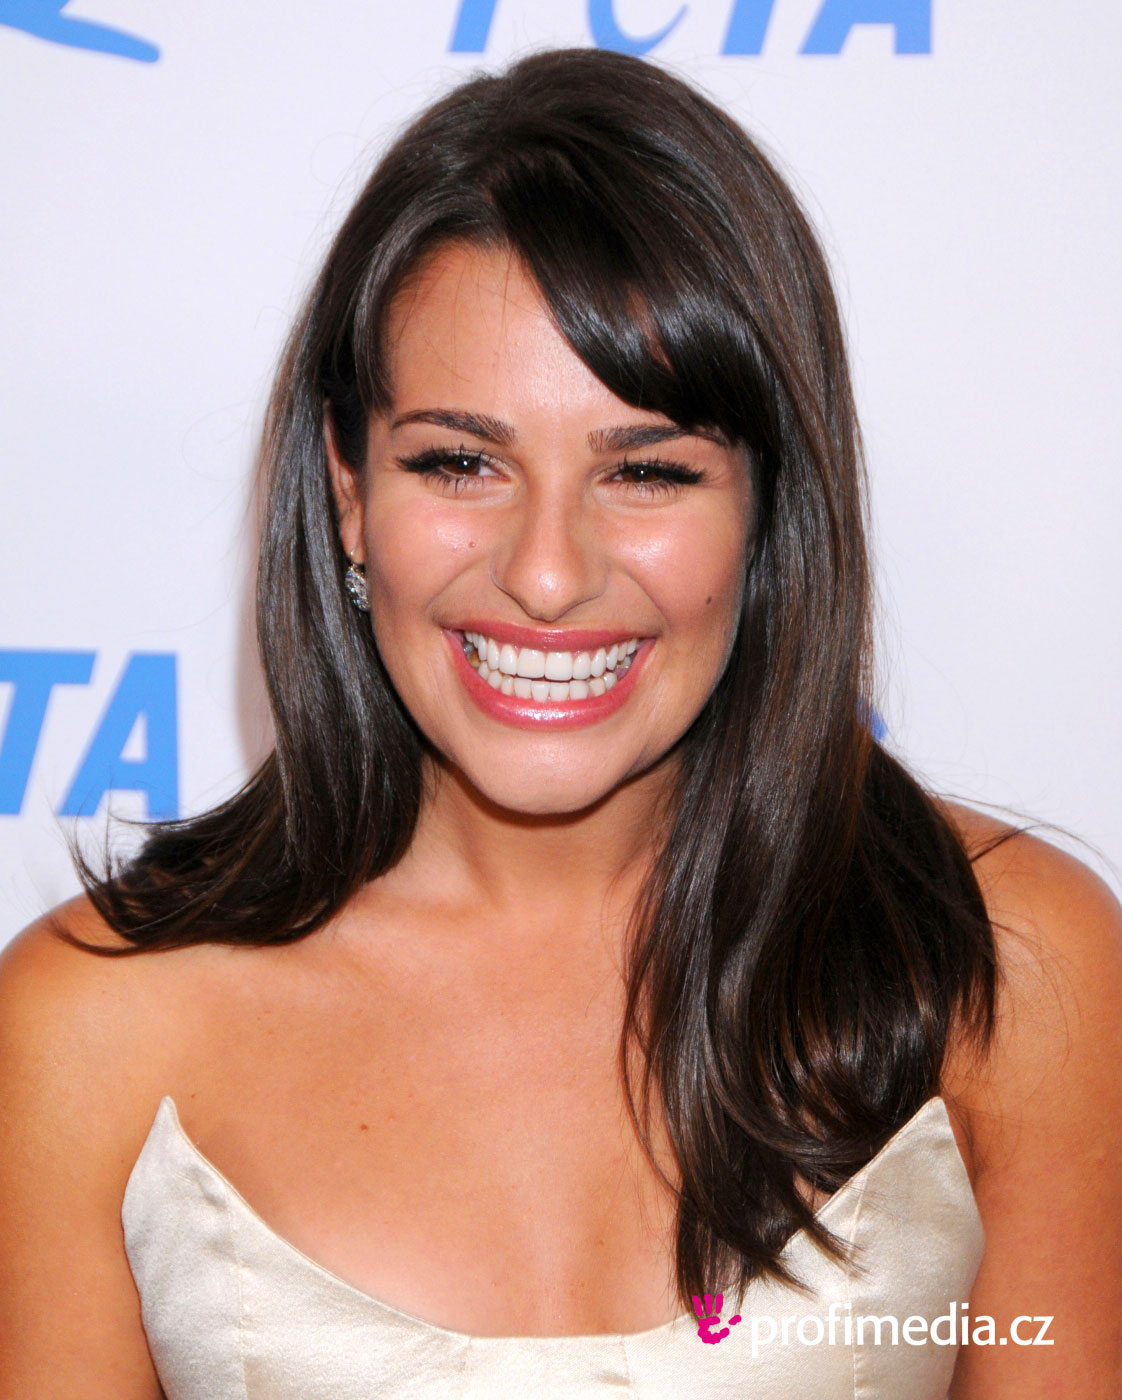 Lea Michele - Picture Actress